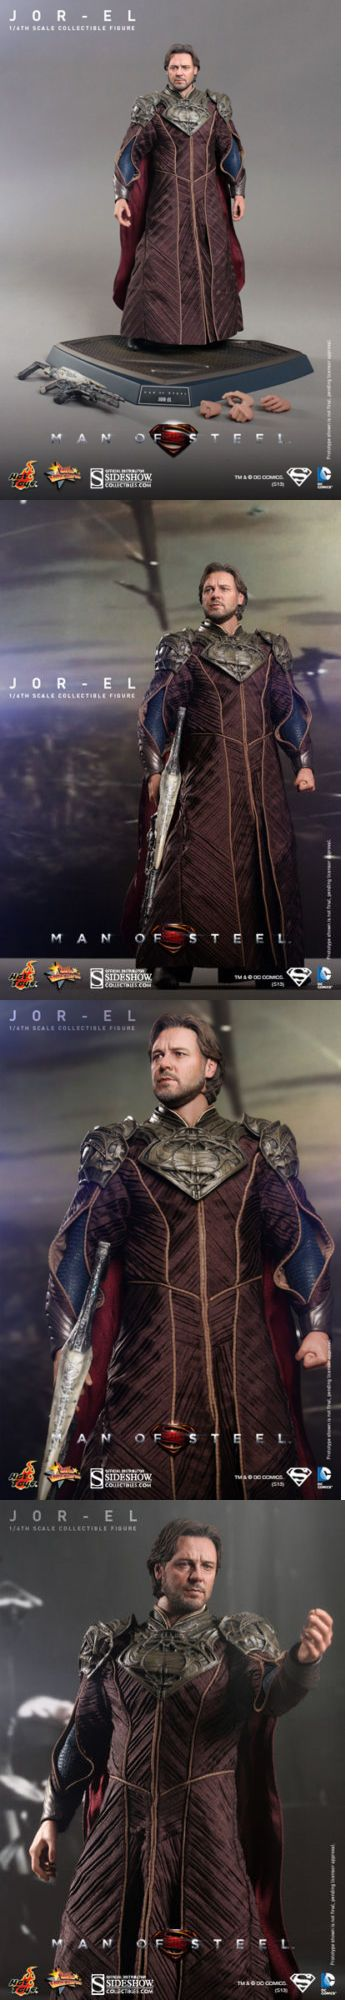 Toys And Games: Hot Toys Man Of Steel Jor El 1 6 Scale Figure Superman Russell Crowe Sideshow -> BUY IT NOW ONLY: $139.99 on eBay!